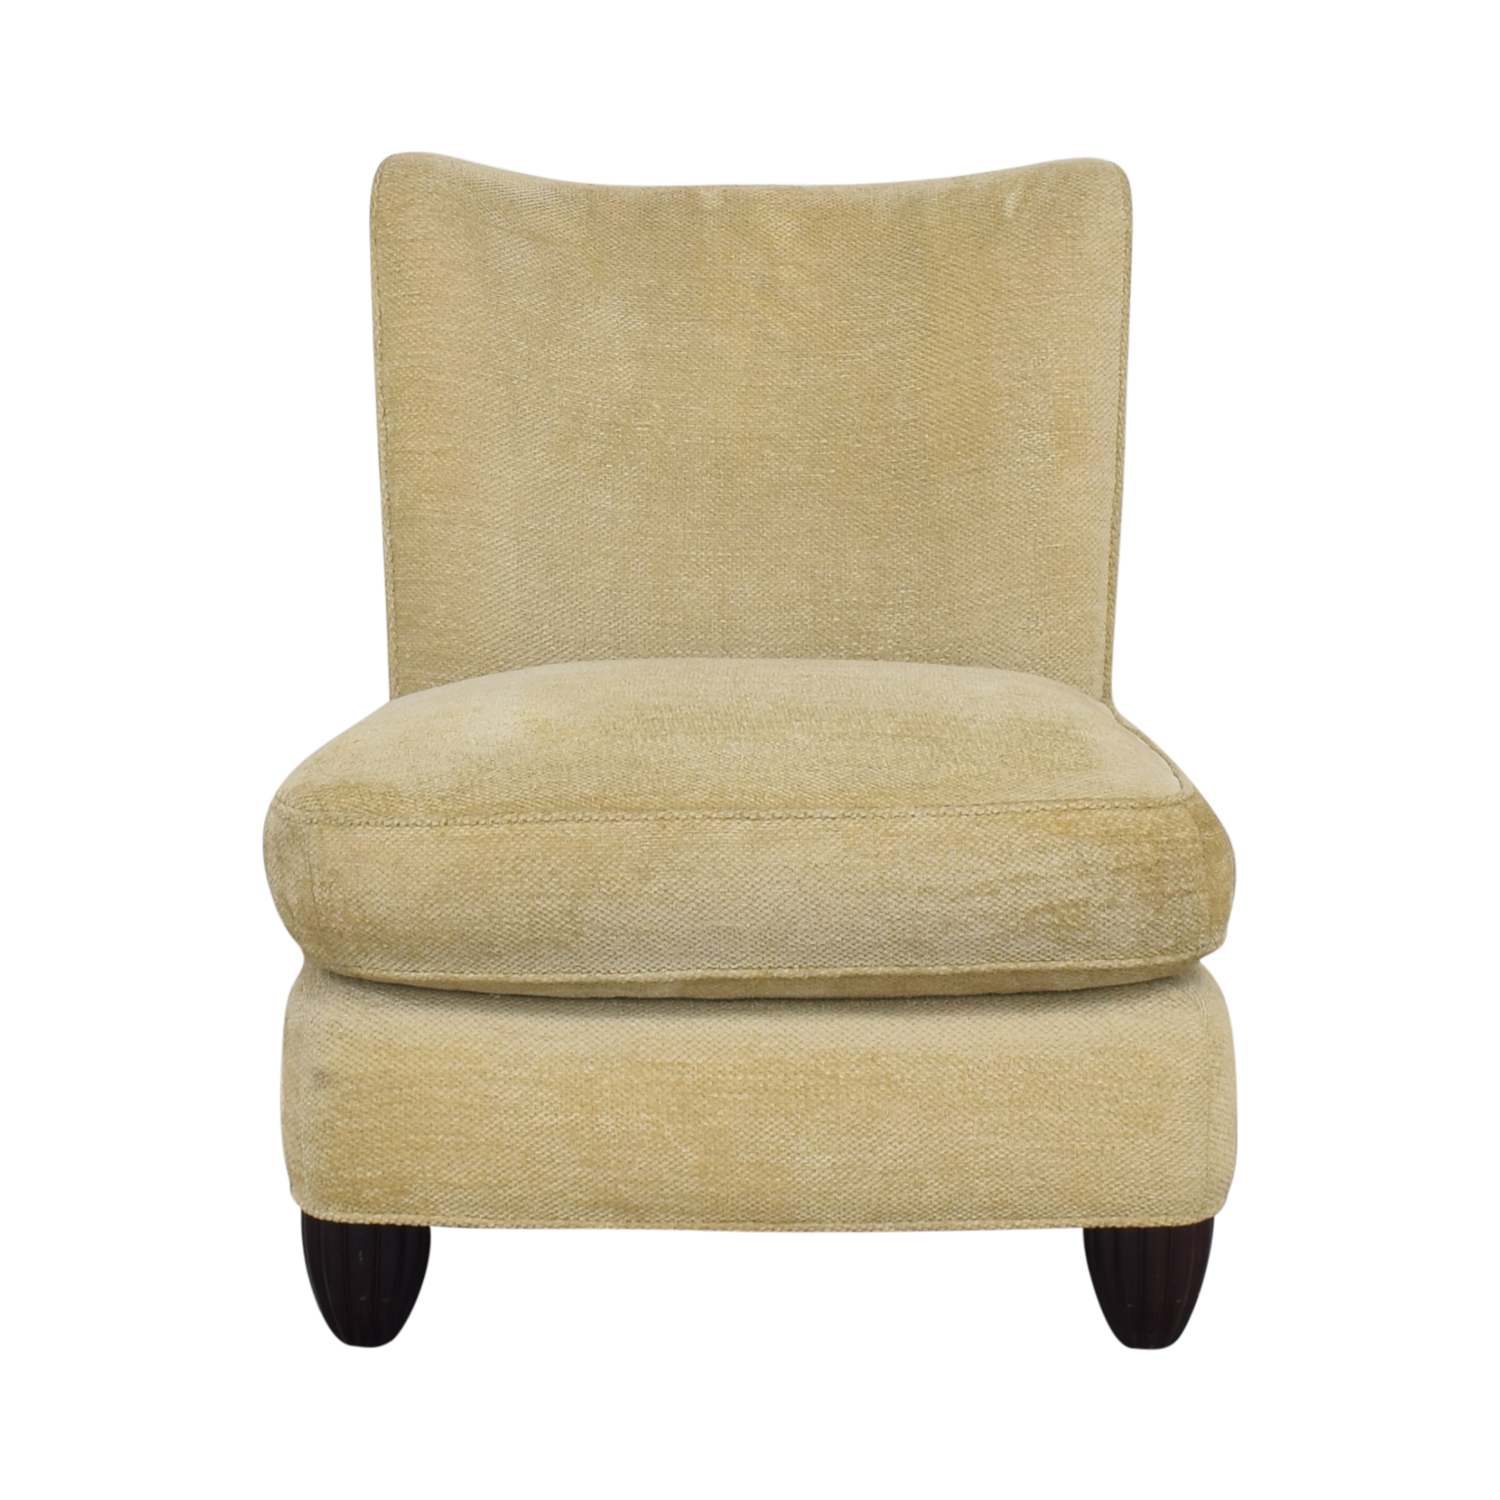 Baker Furniture Baker Furniture Barbara Barry Slipper Chair dimensions